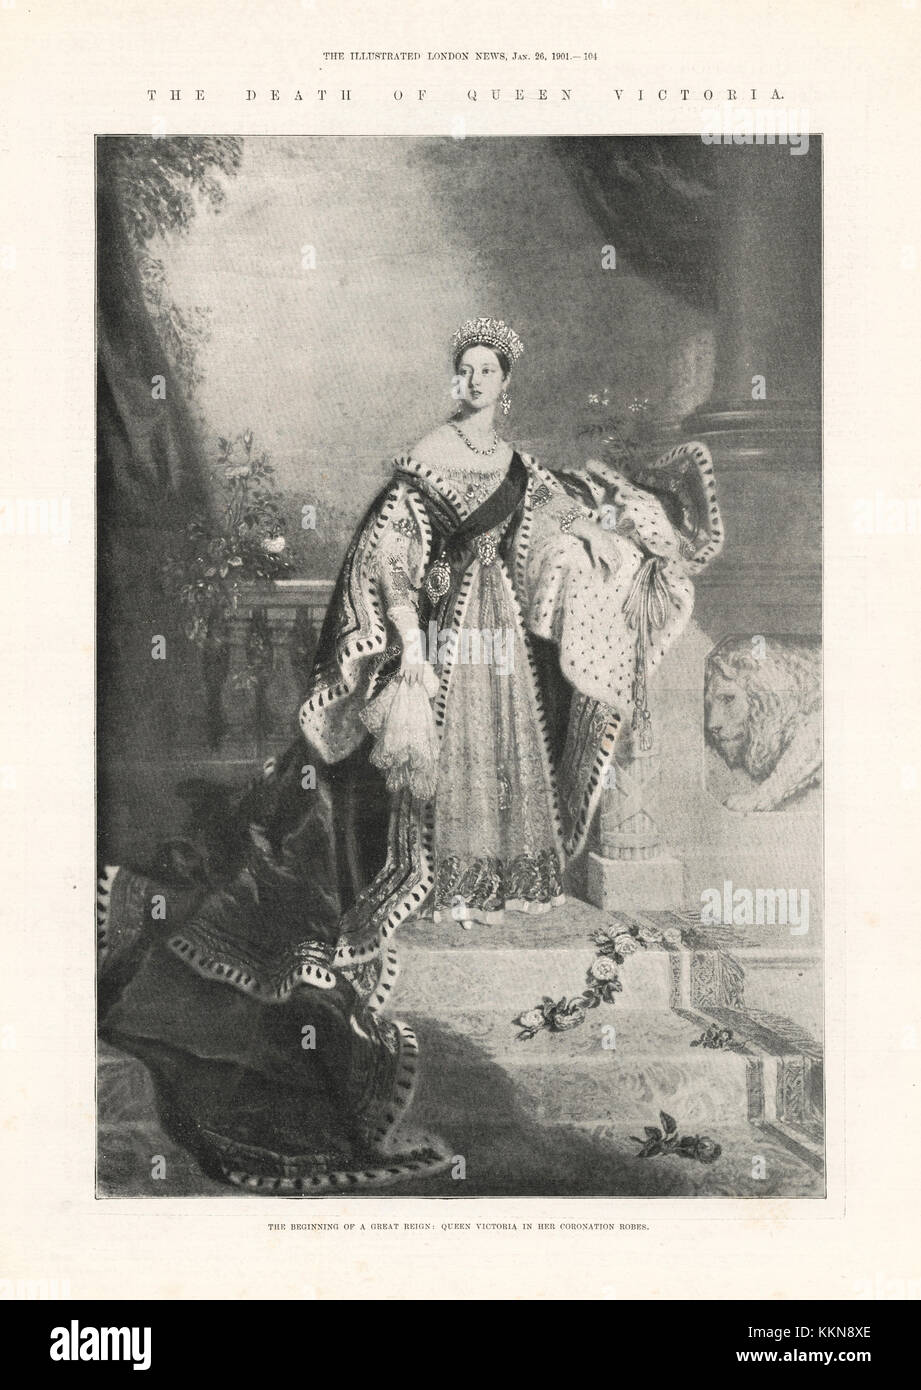 1901 Illustrated London News Queen Victoria in her Coronation robes, 1838 - Stock Image